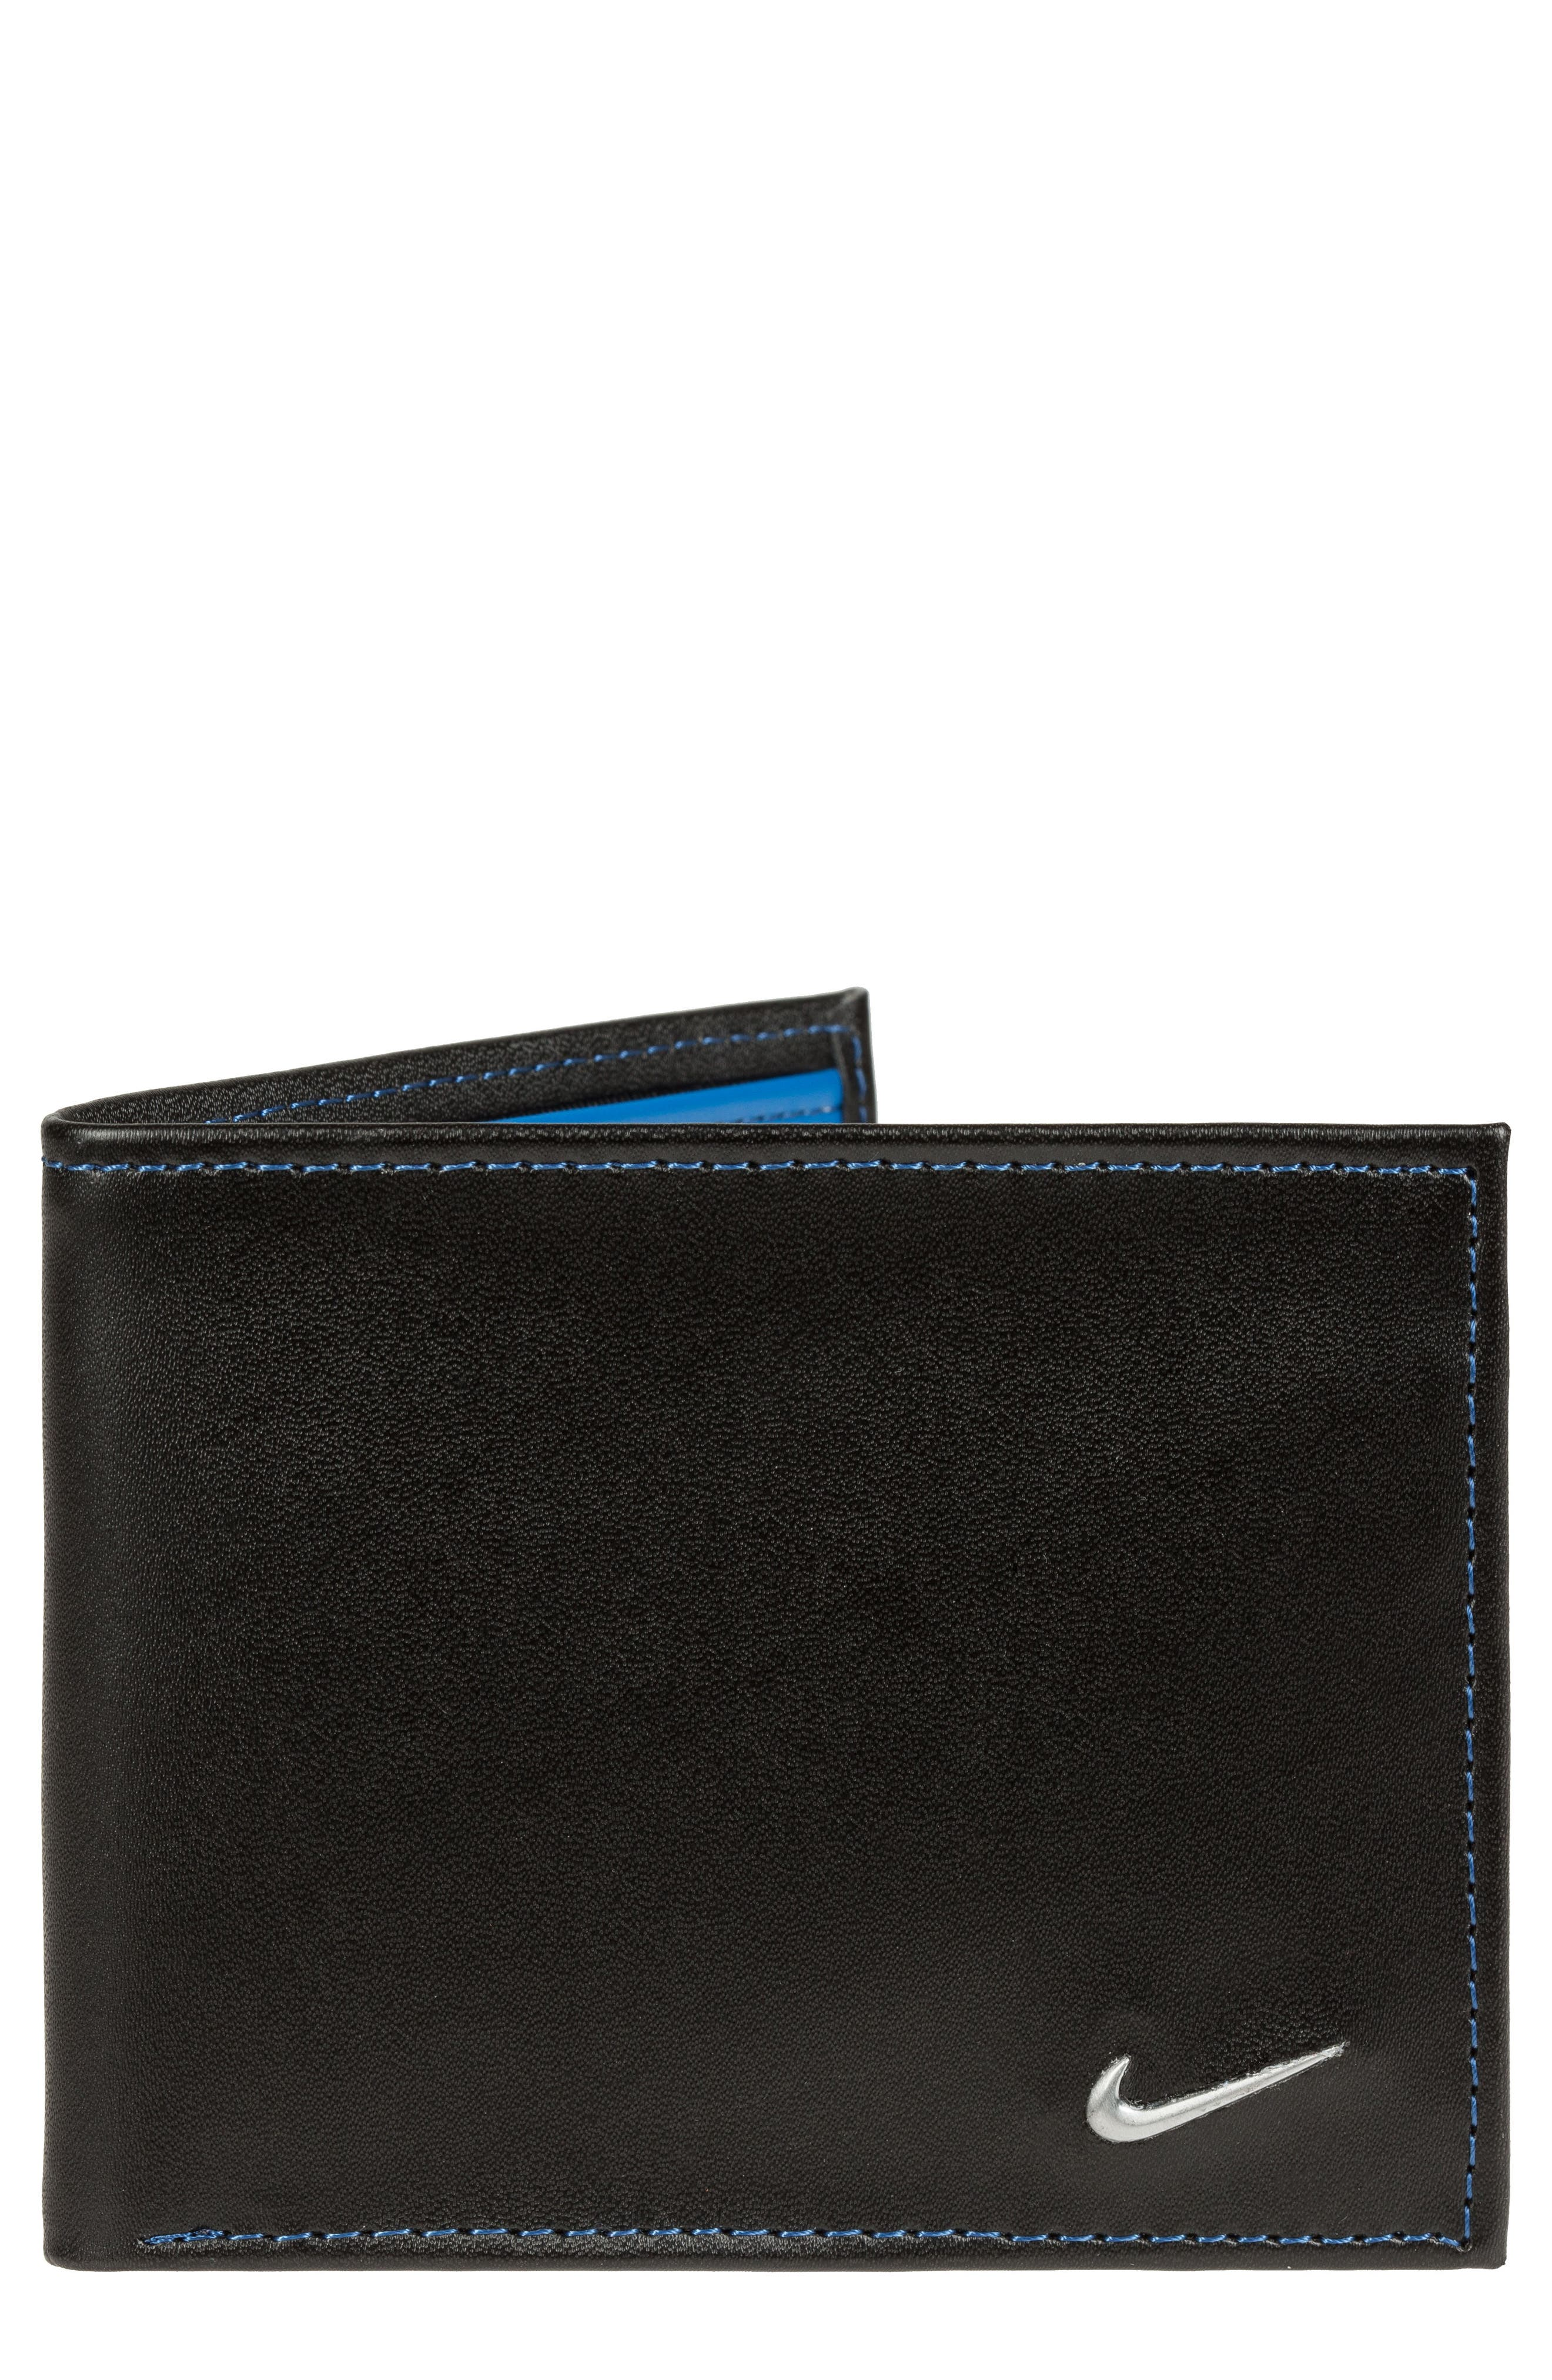 Nike Modern Leather Wallet